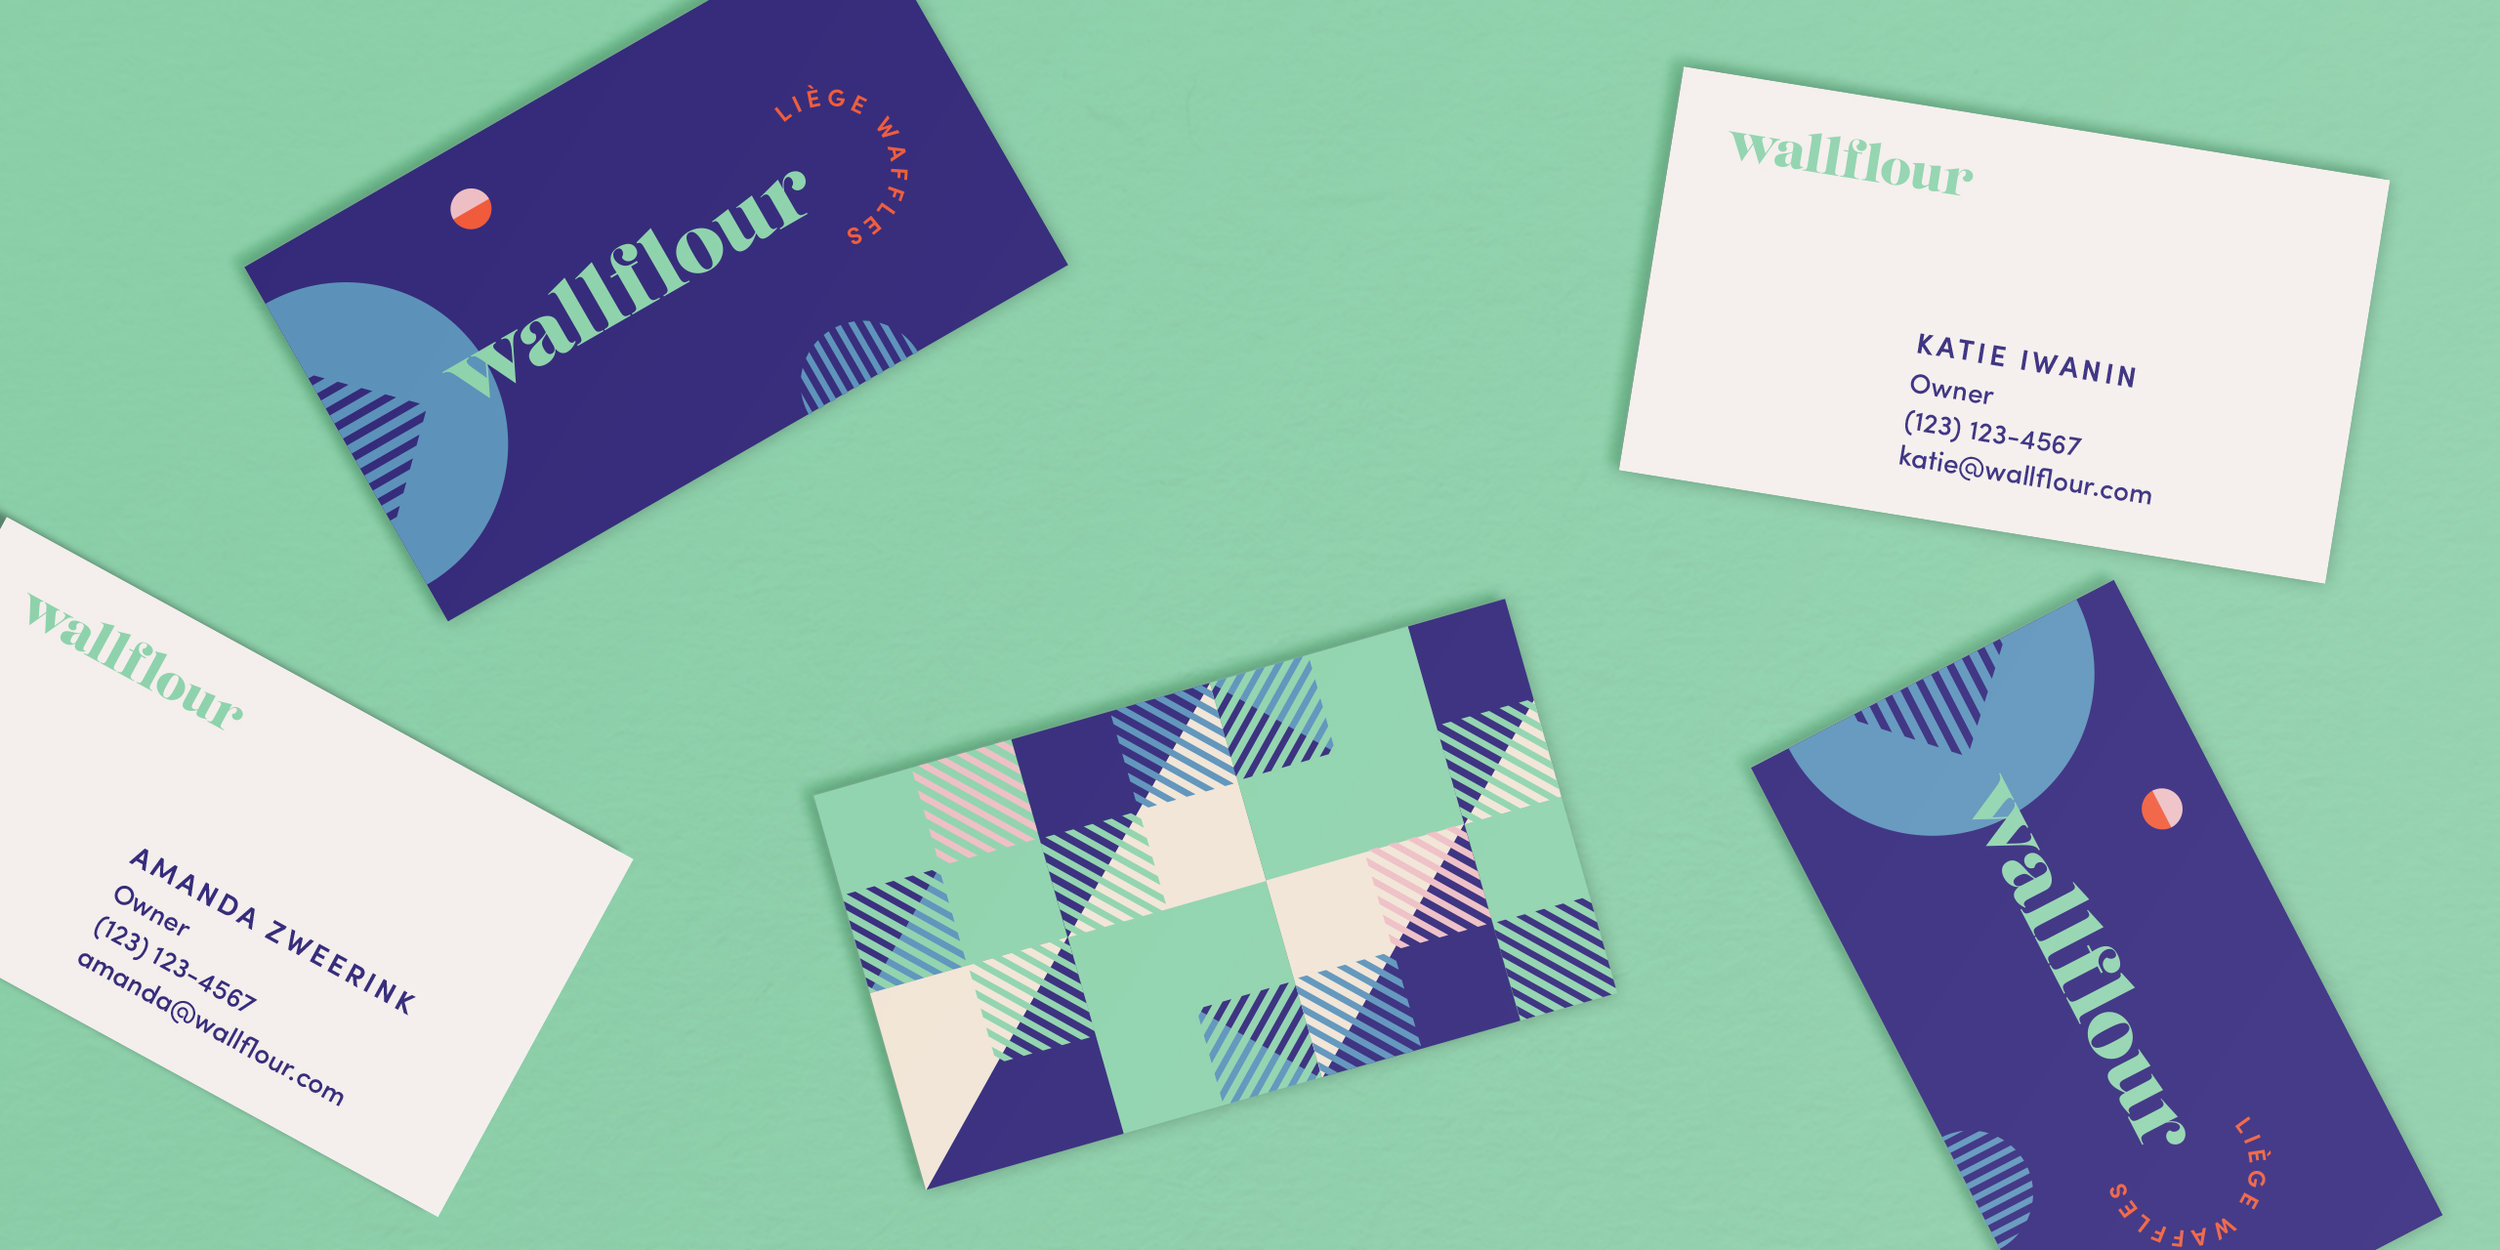 04Wallflour_bizcards-2.jpg